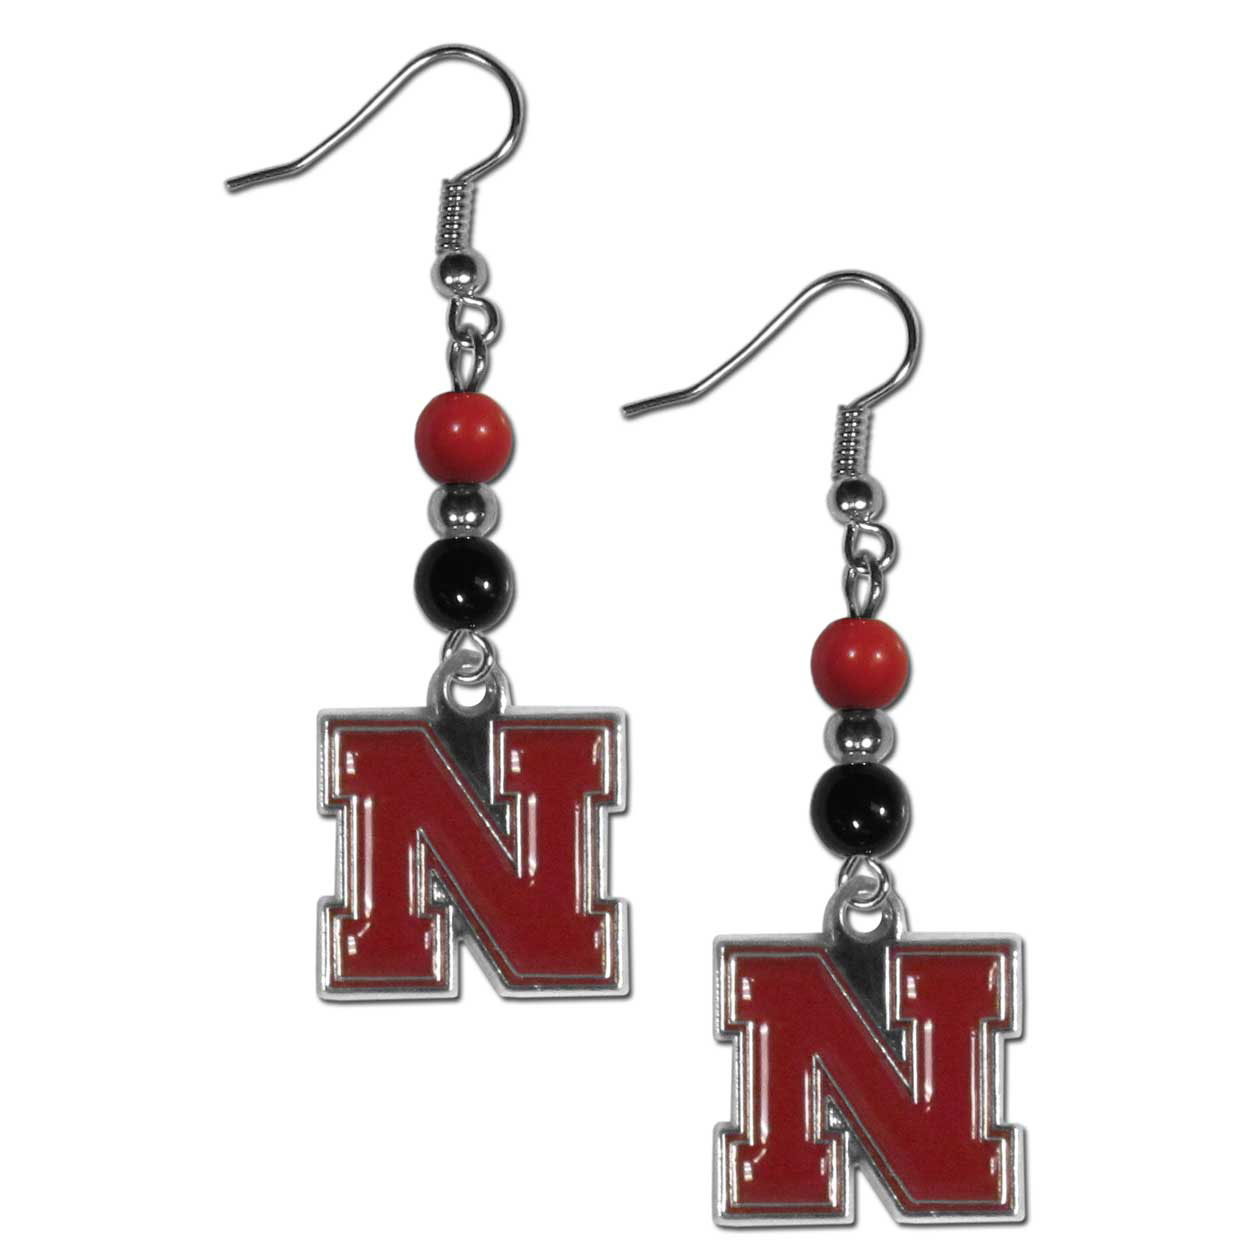 Nebraska Cornhuskers Fan Bead Dangle Earrings - Love your team, show it off with our Nebraska Cornhuskers bead dangle earrings! These super cute earrings hang approximately 2 inches and features 2 team colored beads and a high polish team charm. A must have for game day!